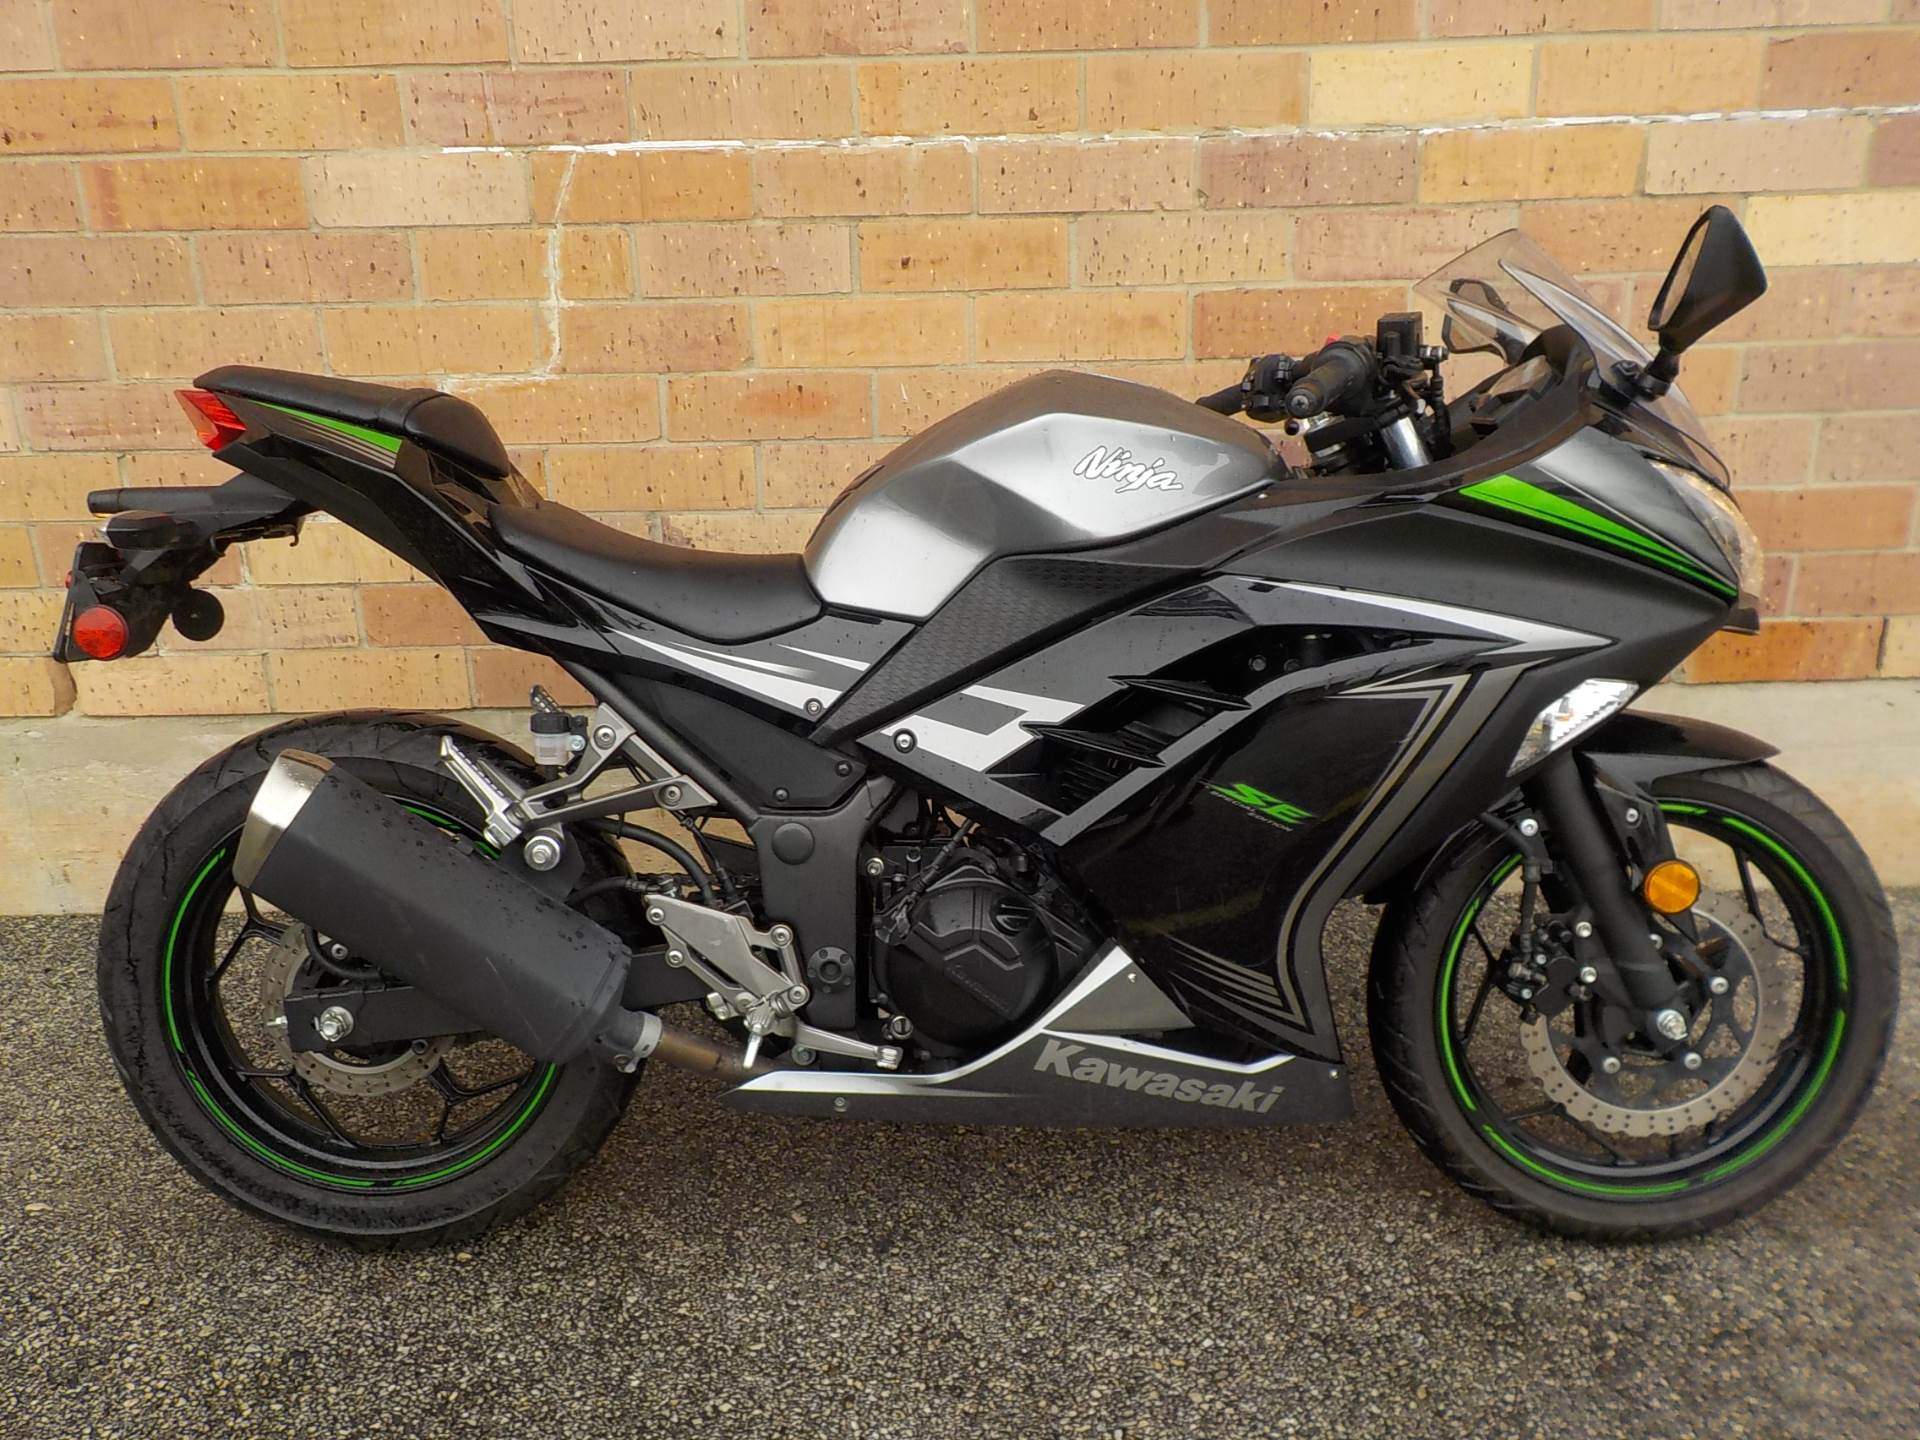 used 2015 kawasaki ninja 300 se motorcycles in san antonio tx stock number 707. Black Bedroom Furniture Sets. Home Design Ideas